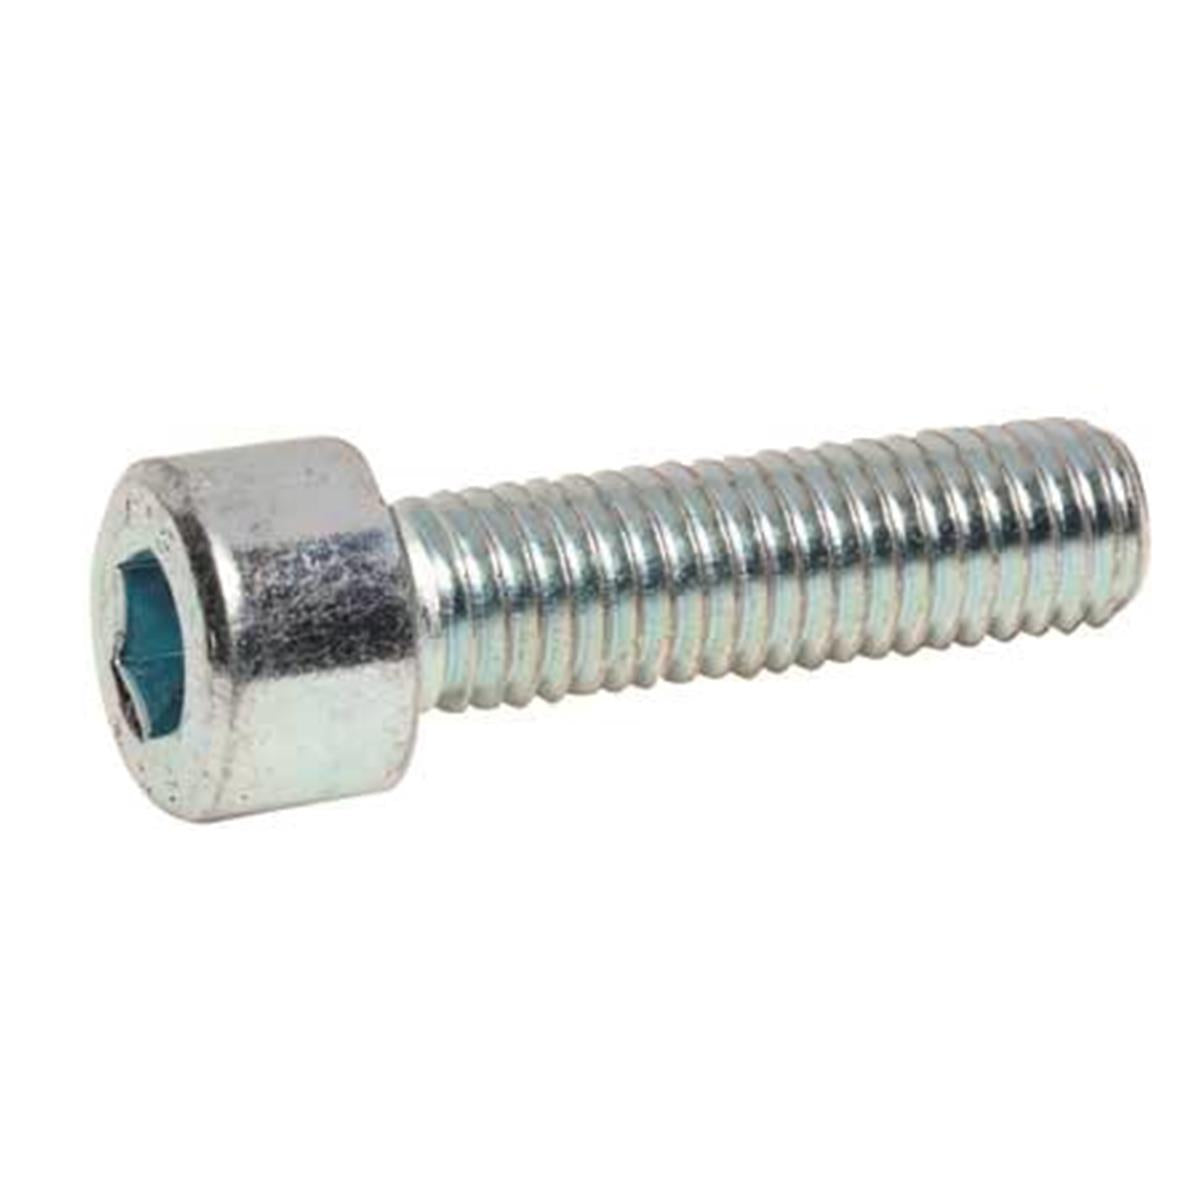 Solo Screw for Attaching 4074262 Lever